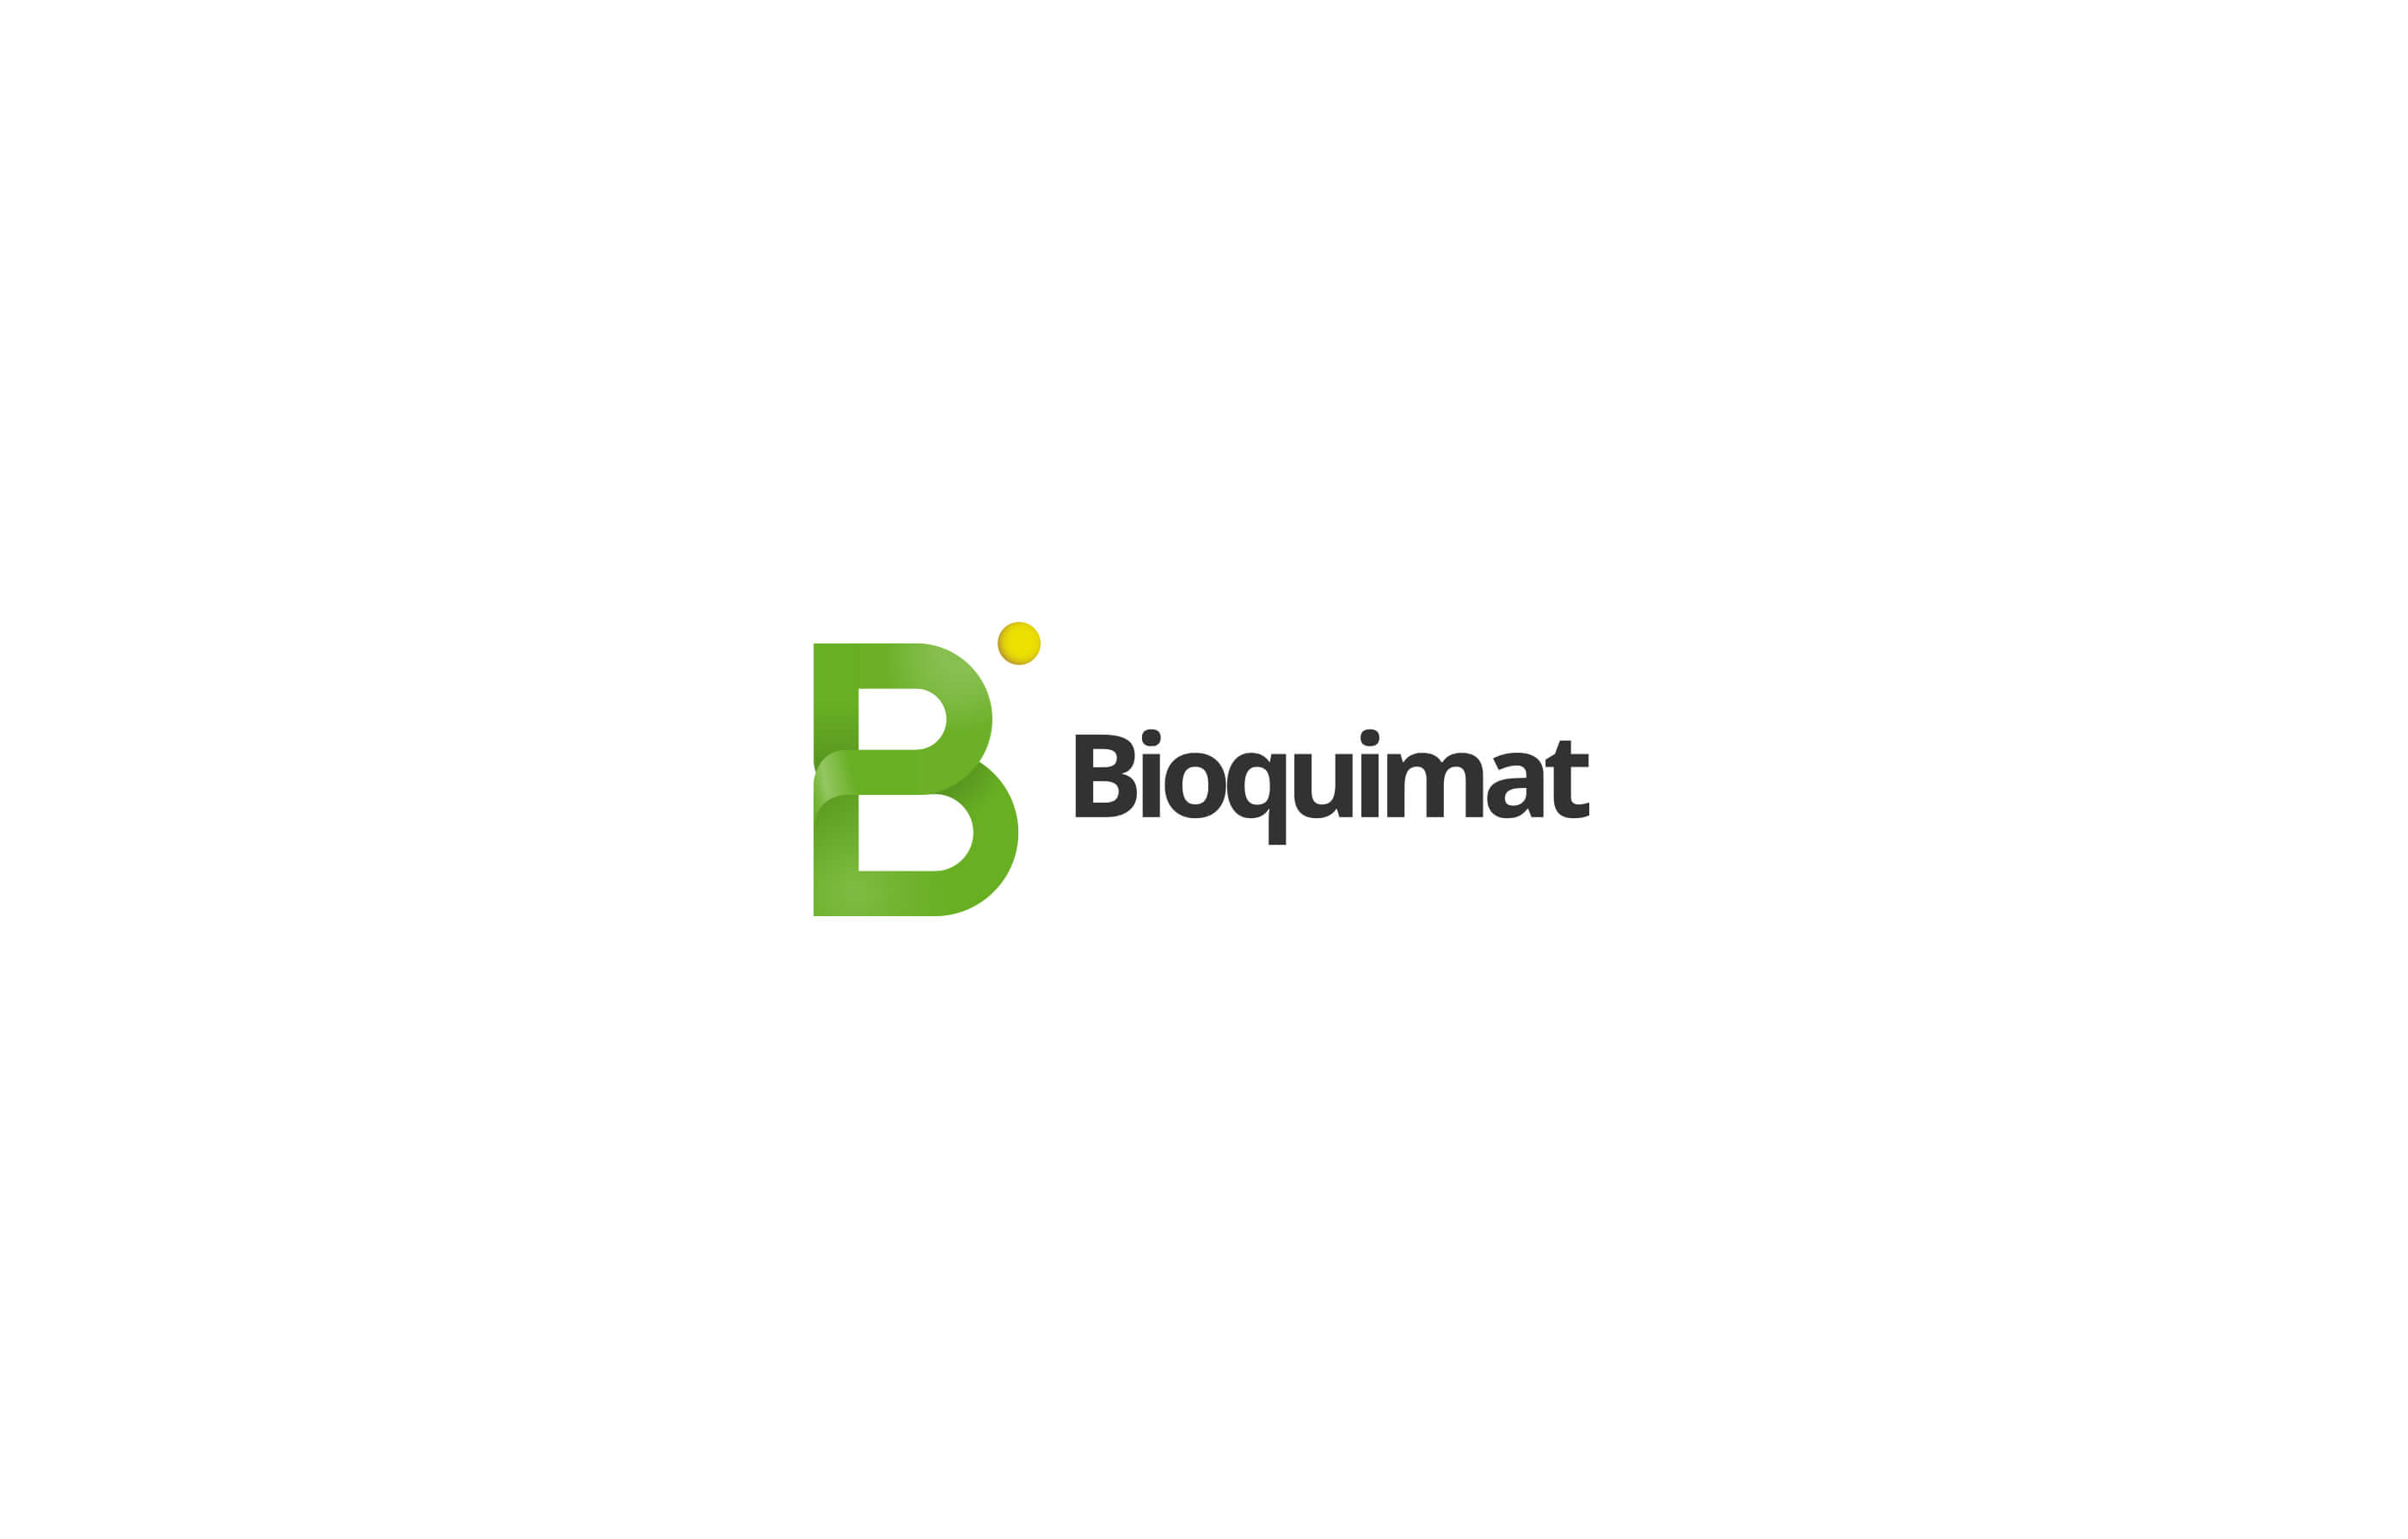 bioquimat_white_background